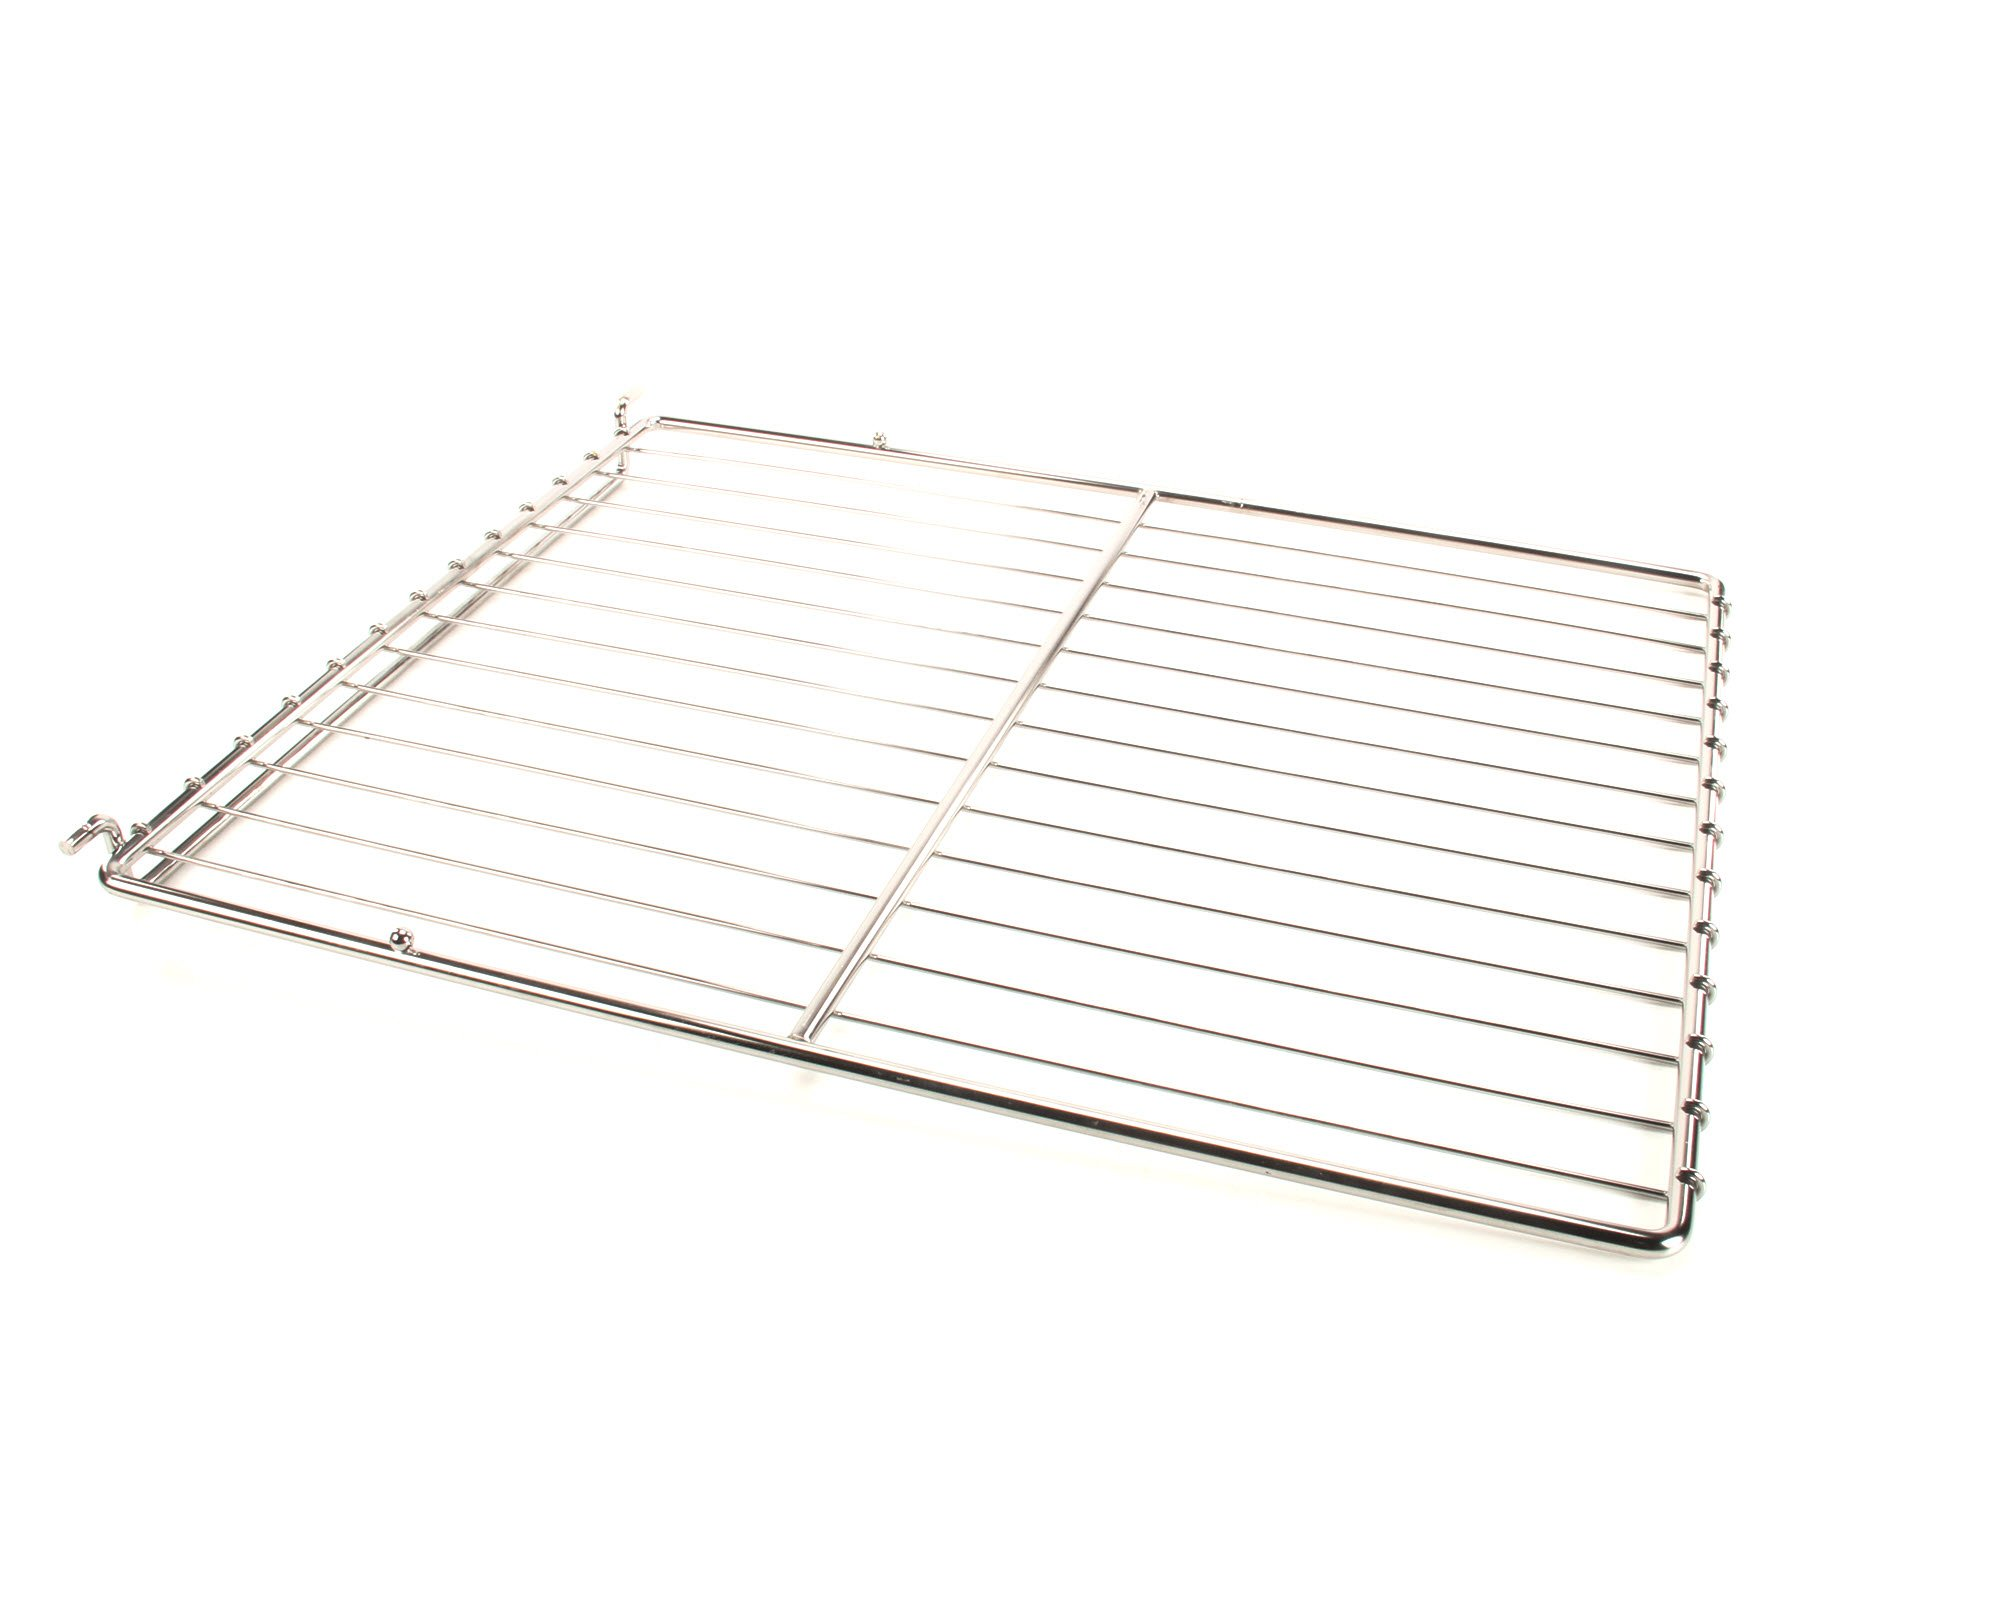 Royal Range 4322, 24 Inch New Style Oven Rack